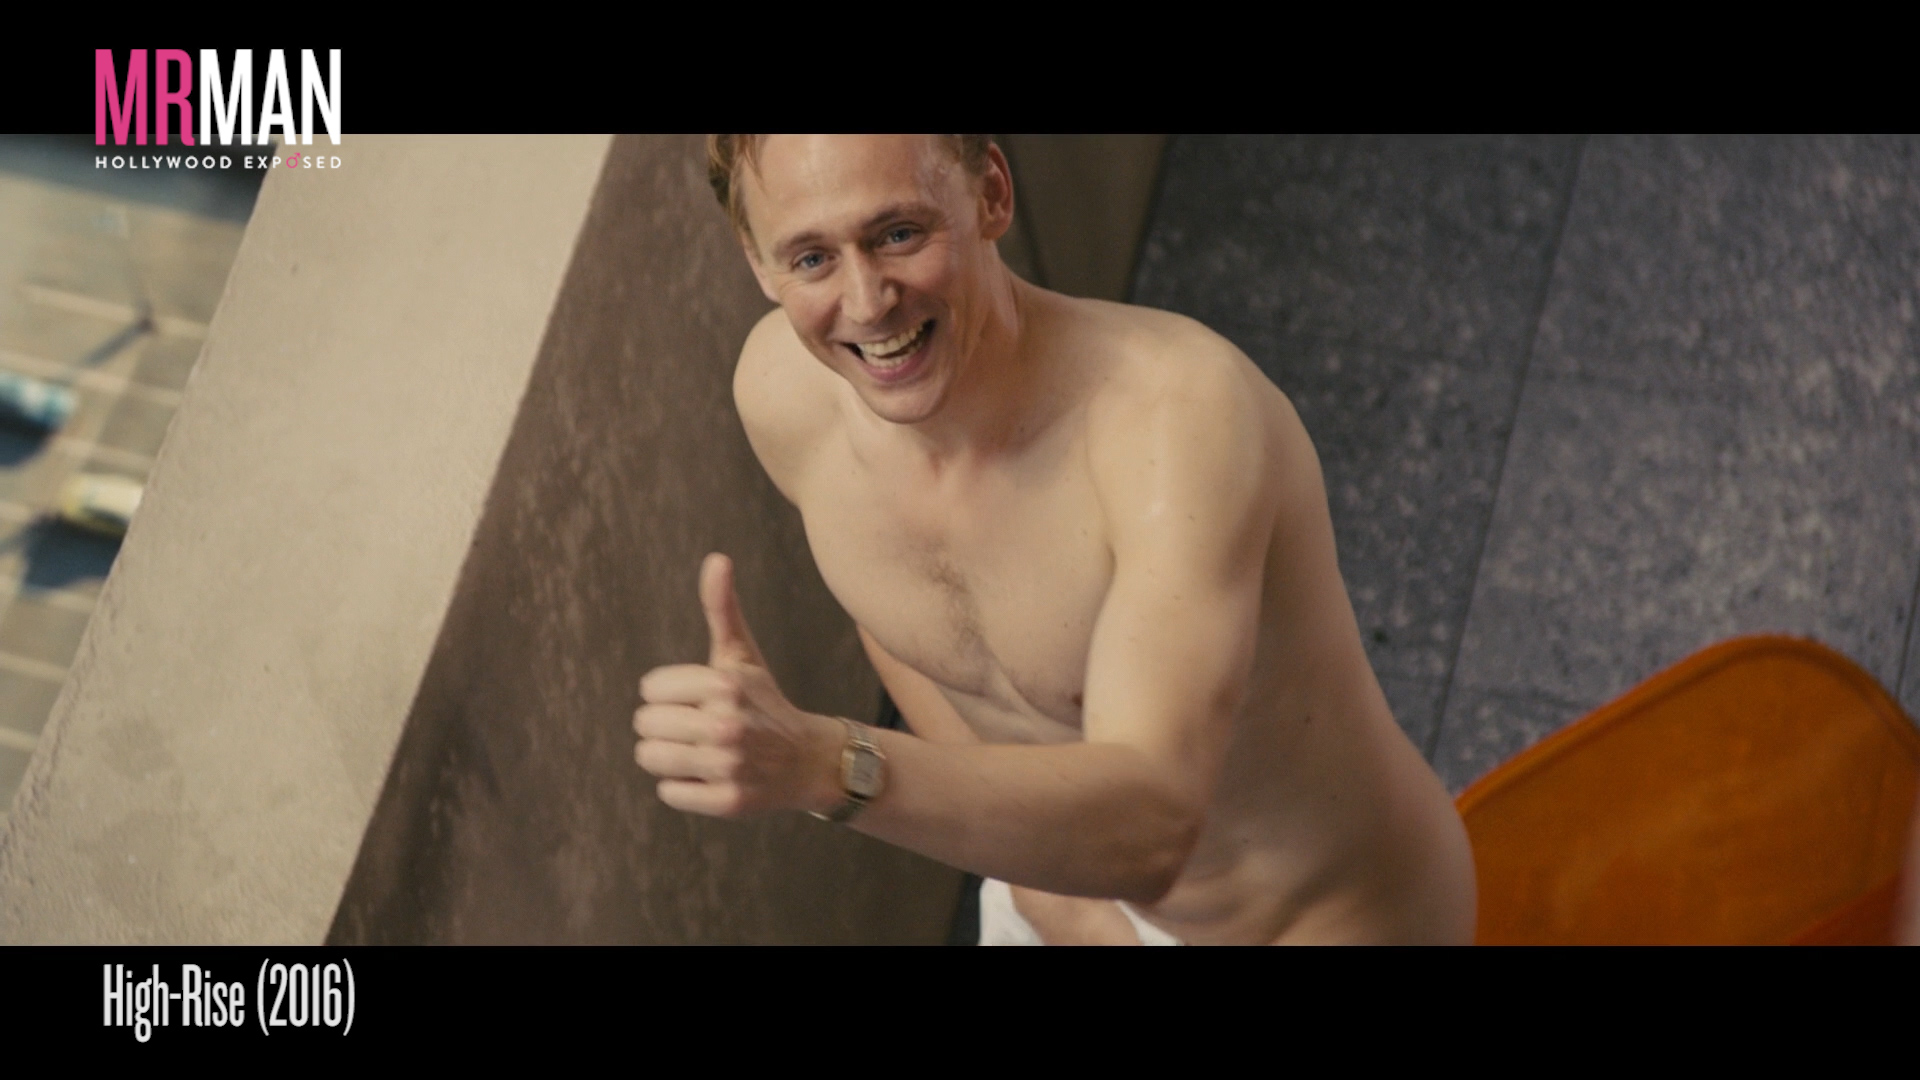 Tom Hiddleston's Dick Will Give You a High Rise